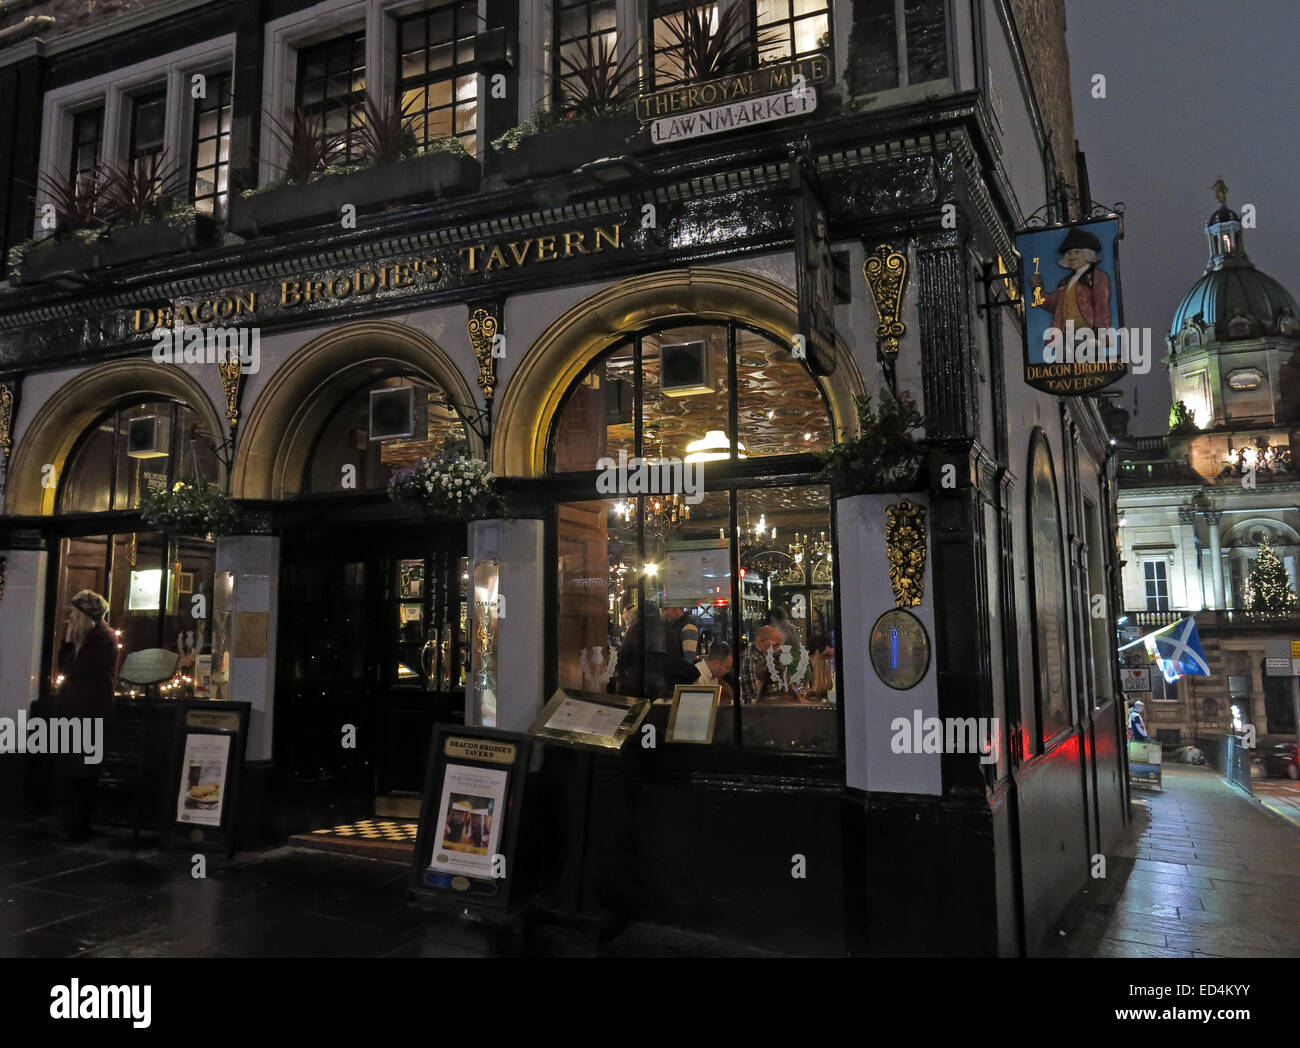 Deacon Brodies Tavern, Royal Mile, Edinburgh,Scotland at dusk - Stock Image